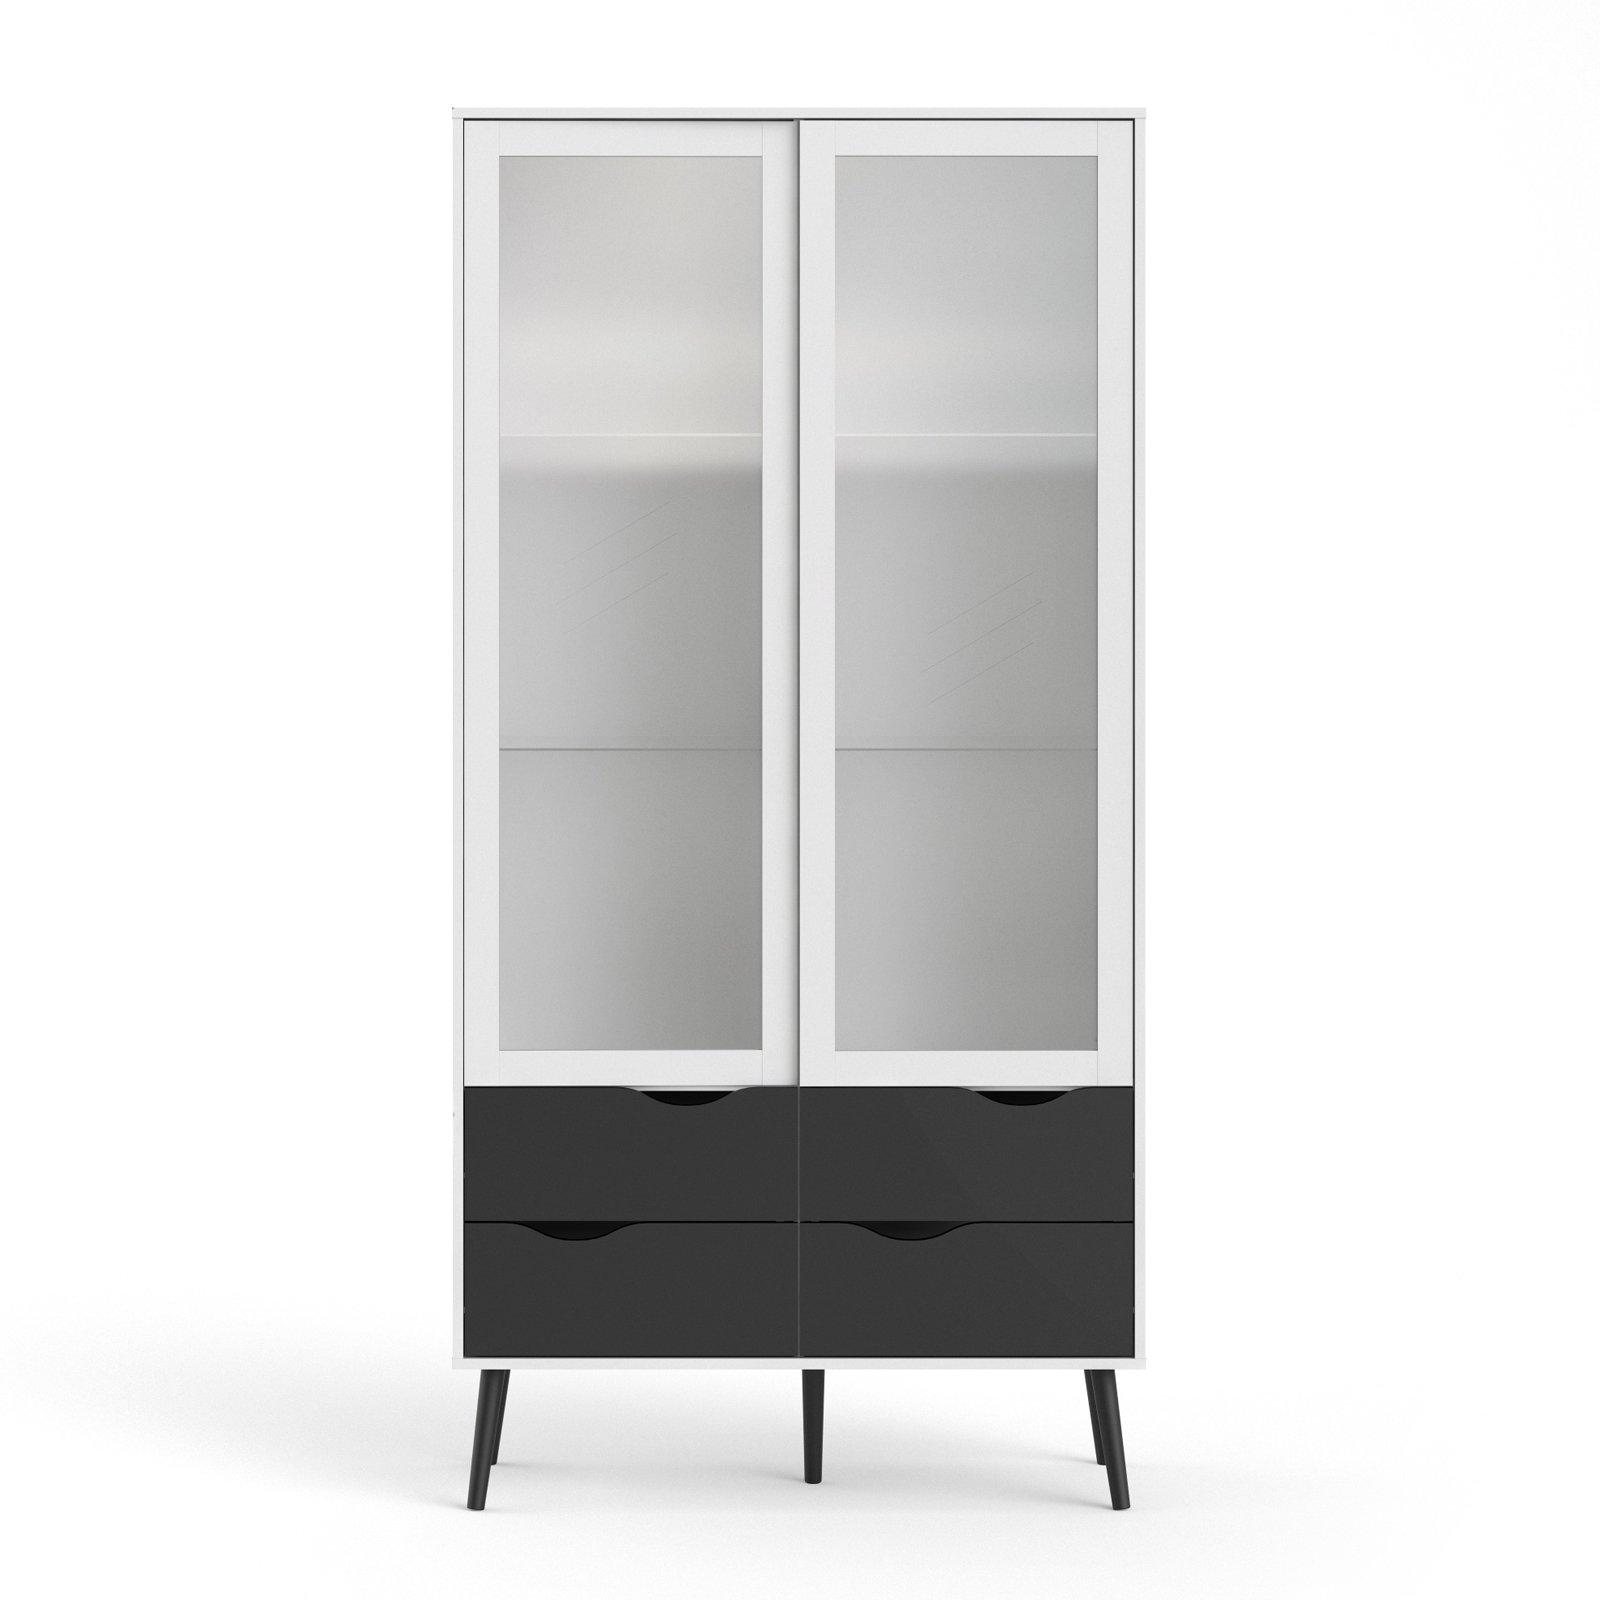 Tvilum Diana 4 Drawer China Cabinet with Glass Doors by Tvilum